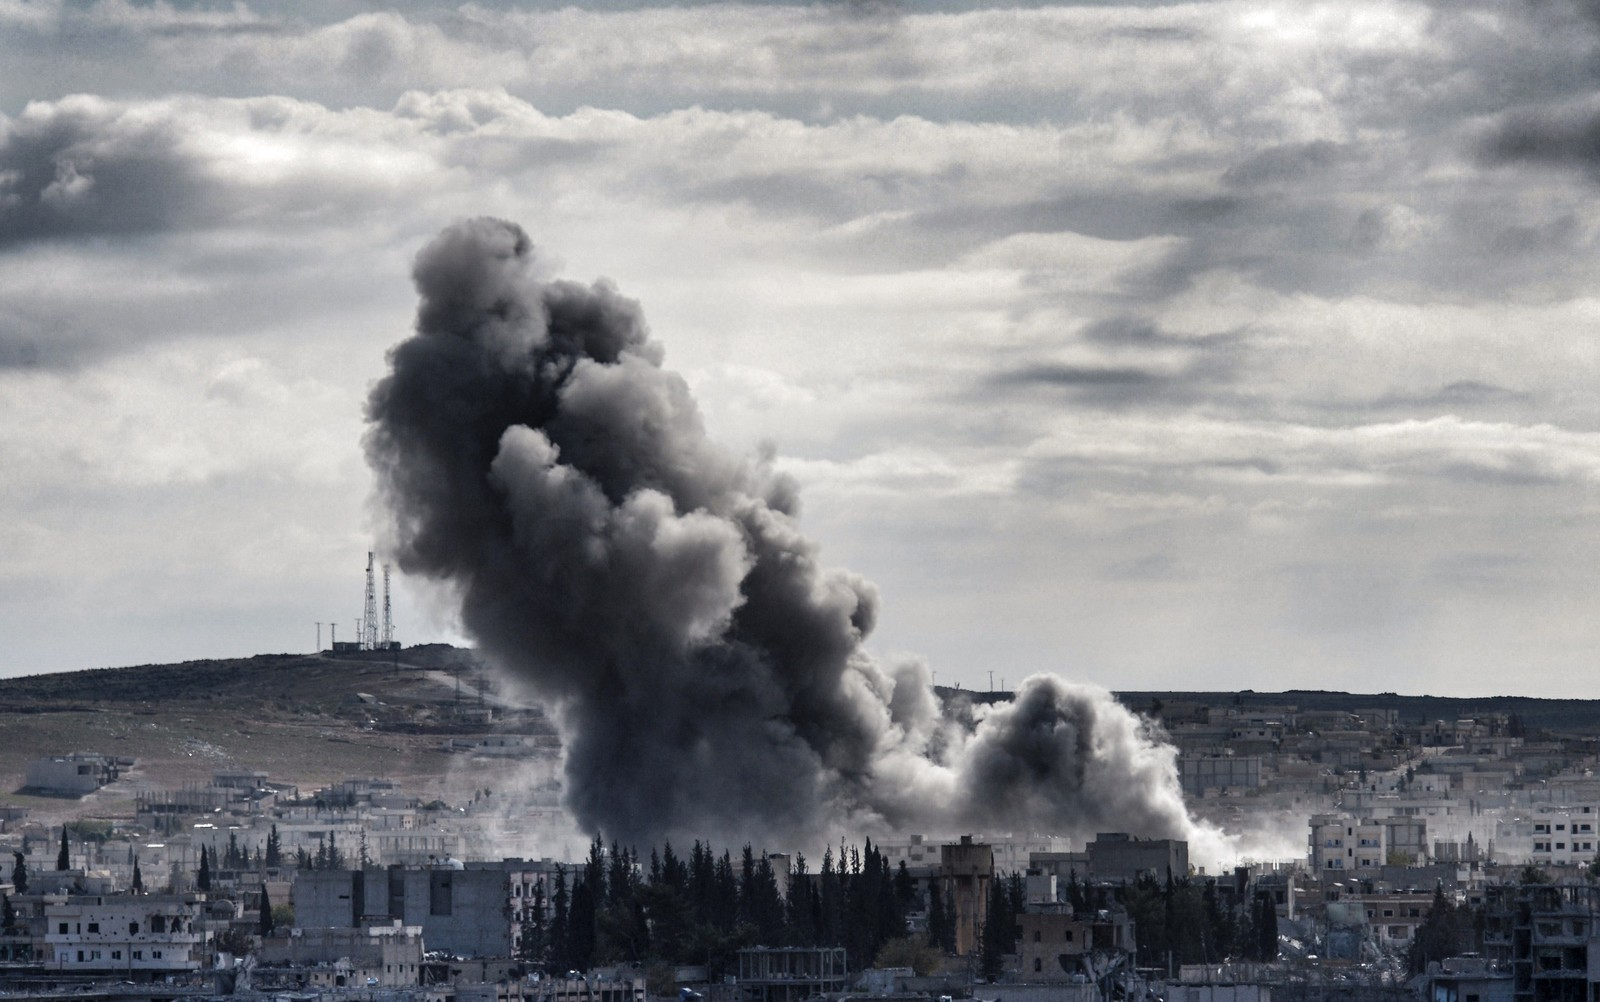 Smoke rises above from Syrian Kurdish town of Kobane, also known as Ain al-Arab, as seen from the Turkish border town of Suruc, in Sanliurfa province, on November 2, 2014. Iraqi peshmerga fighters prepared on November 1 to join the fight against jihadists for the Syrian border town of Kobane, lifting hopes among residents of a turning point in the highly symbolic battle.